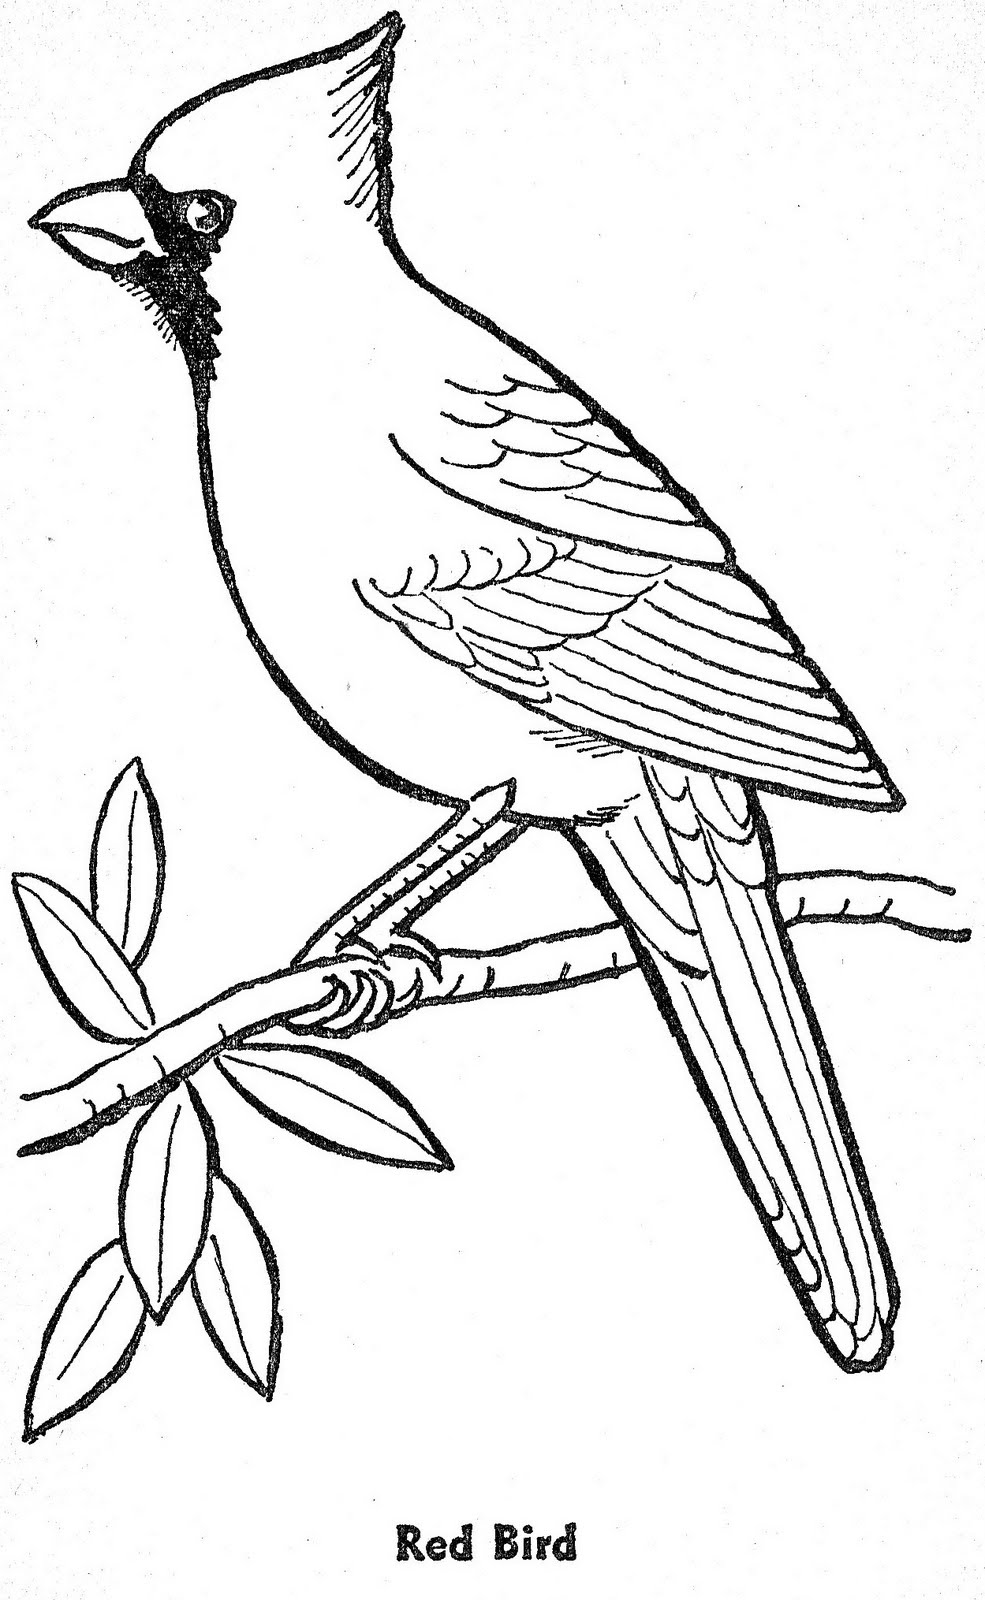 free bird coloring pages cardinal coloring download cardinal coloring for free 2019 pages bird coloring free